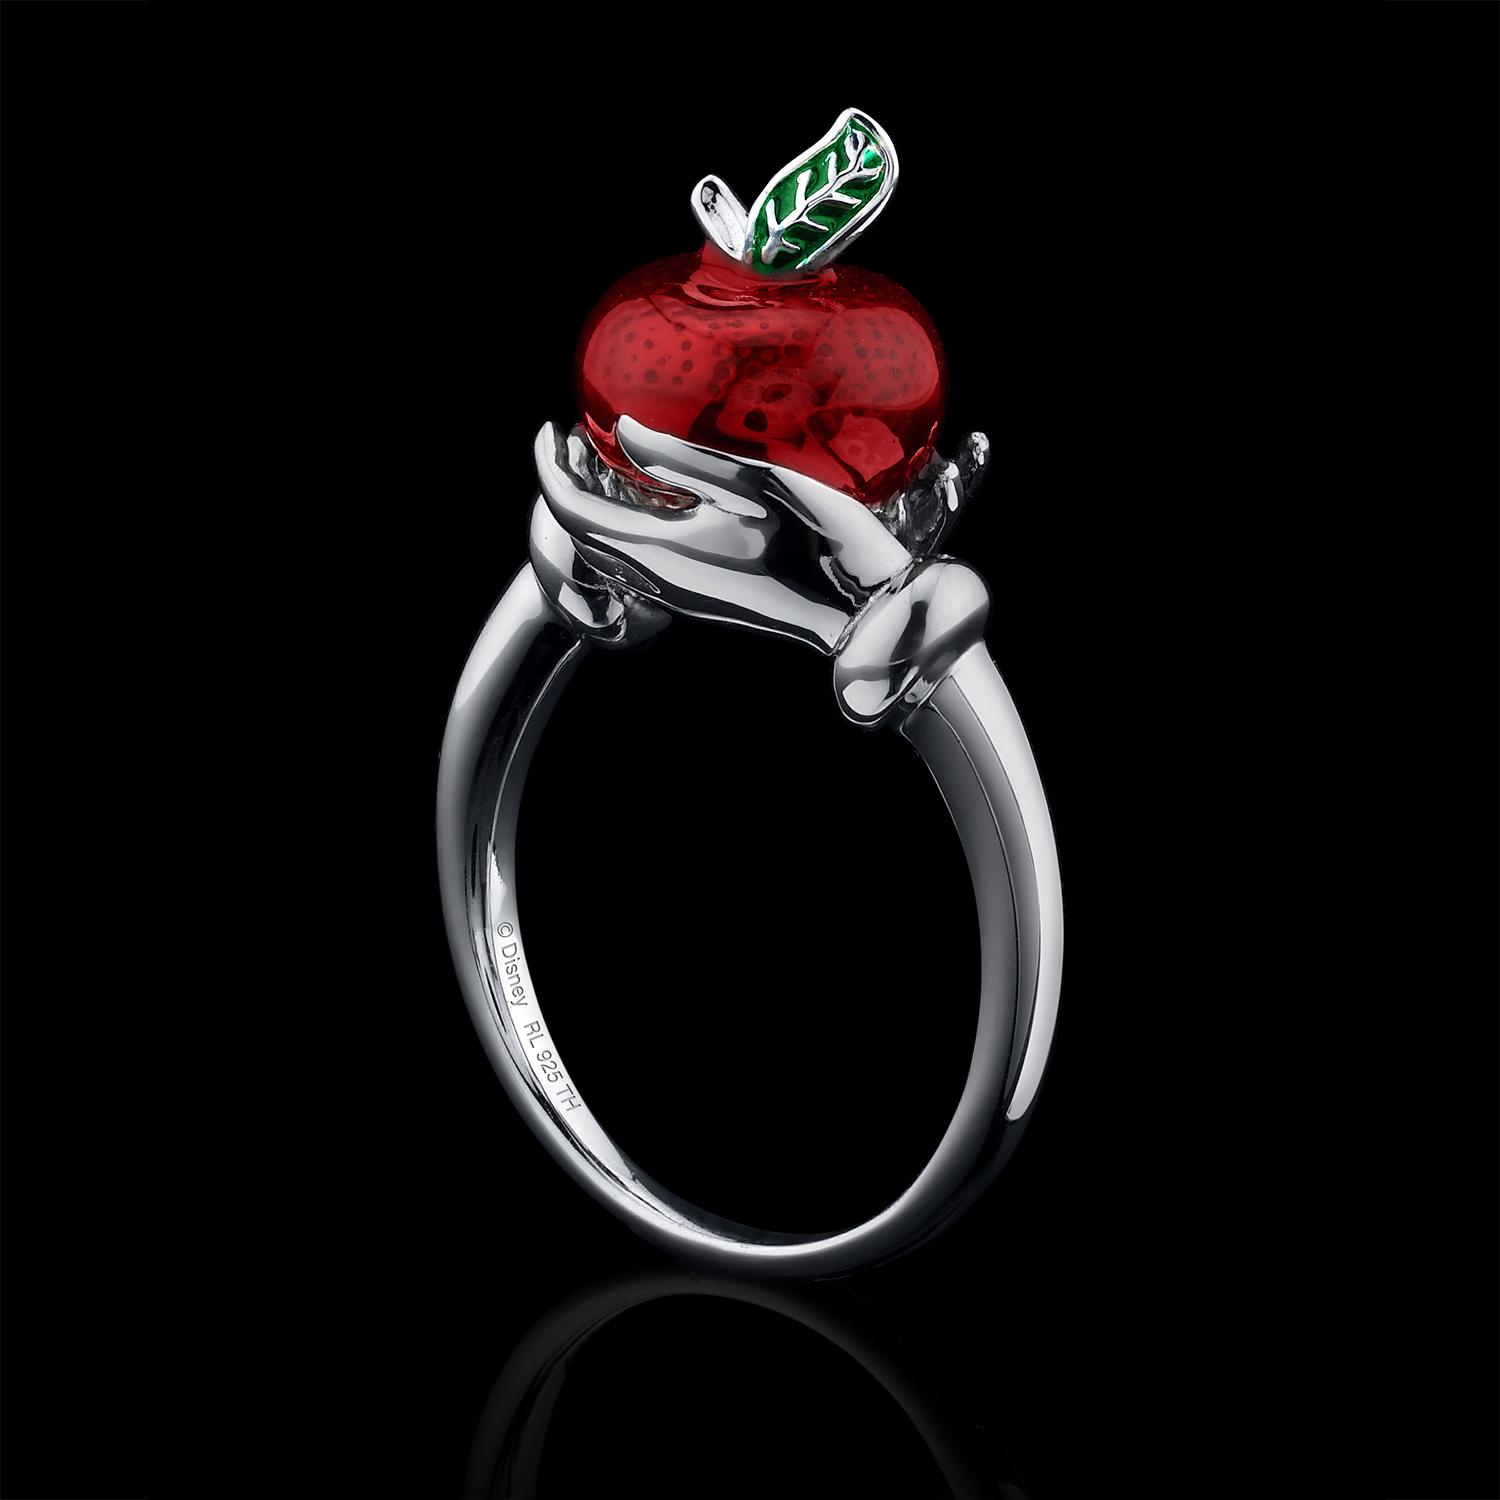 ring, enamel, silver, Snow White, Disney, jewelry photography, beautiful ring